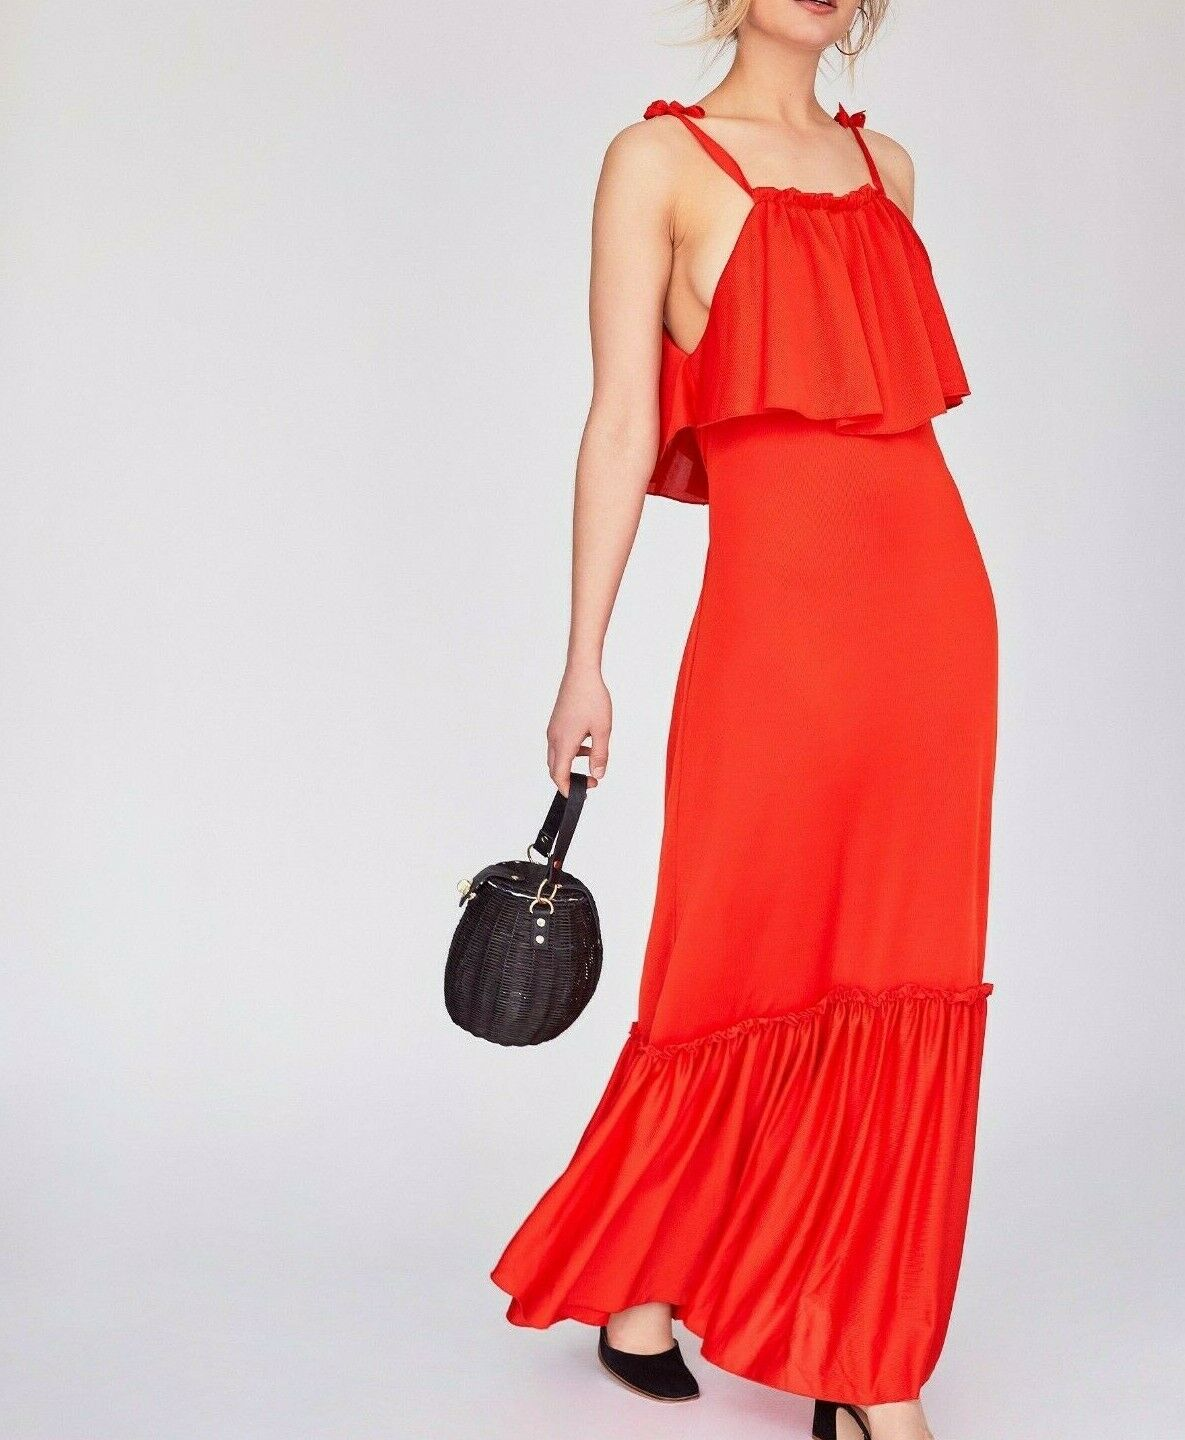 Free People rot Coco Flounced Popover Maxi Dress M  New with tag MSRP